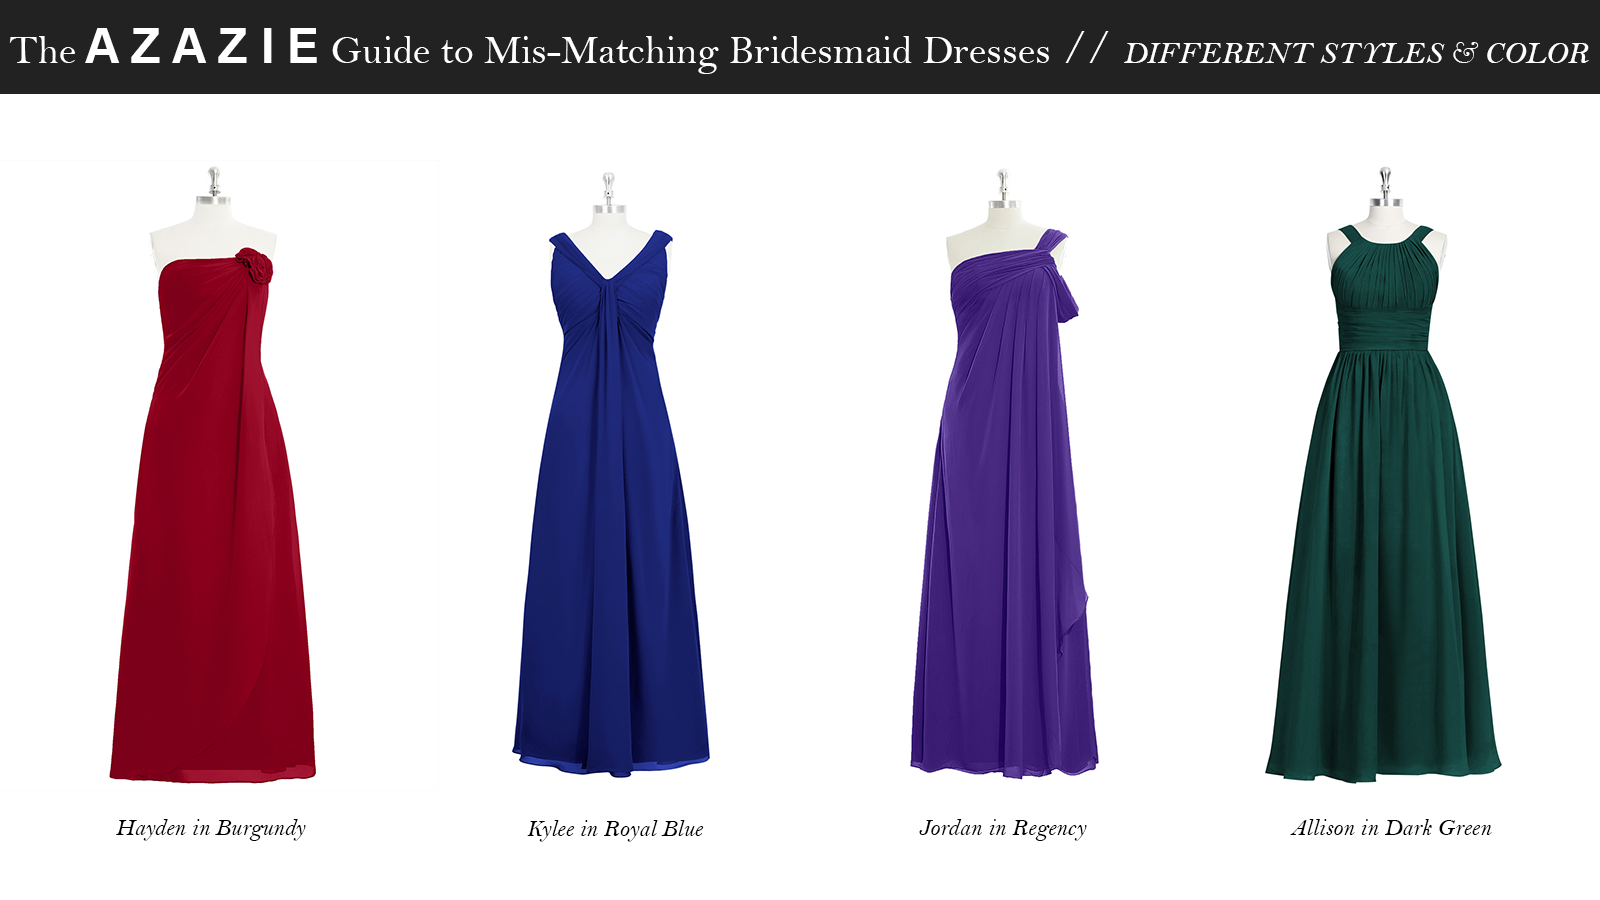 AZAZIE_Guide_MisMatching_Bridesmaid_Dresses_Different_Styles_and_Color